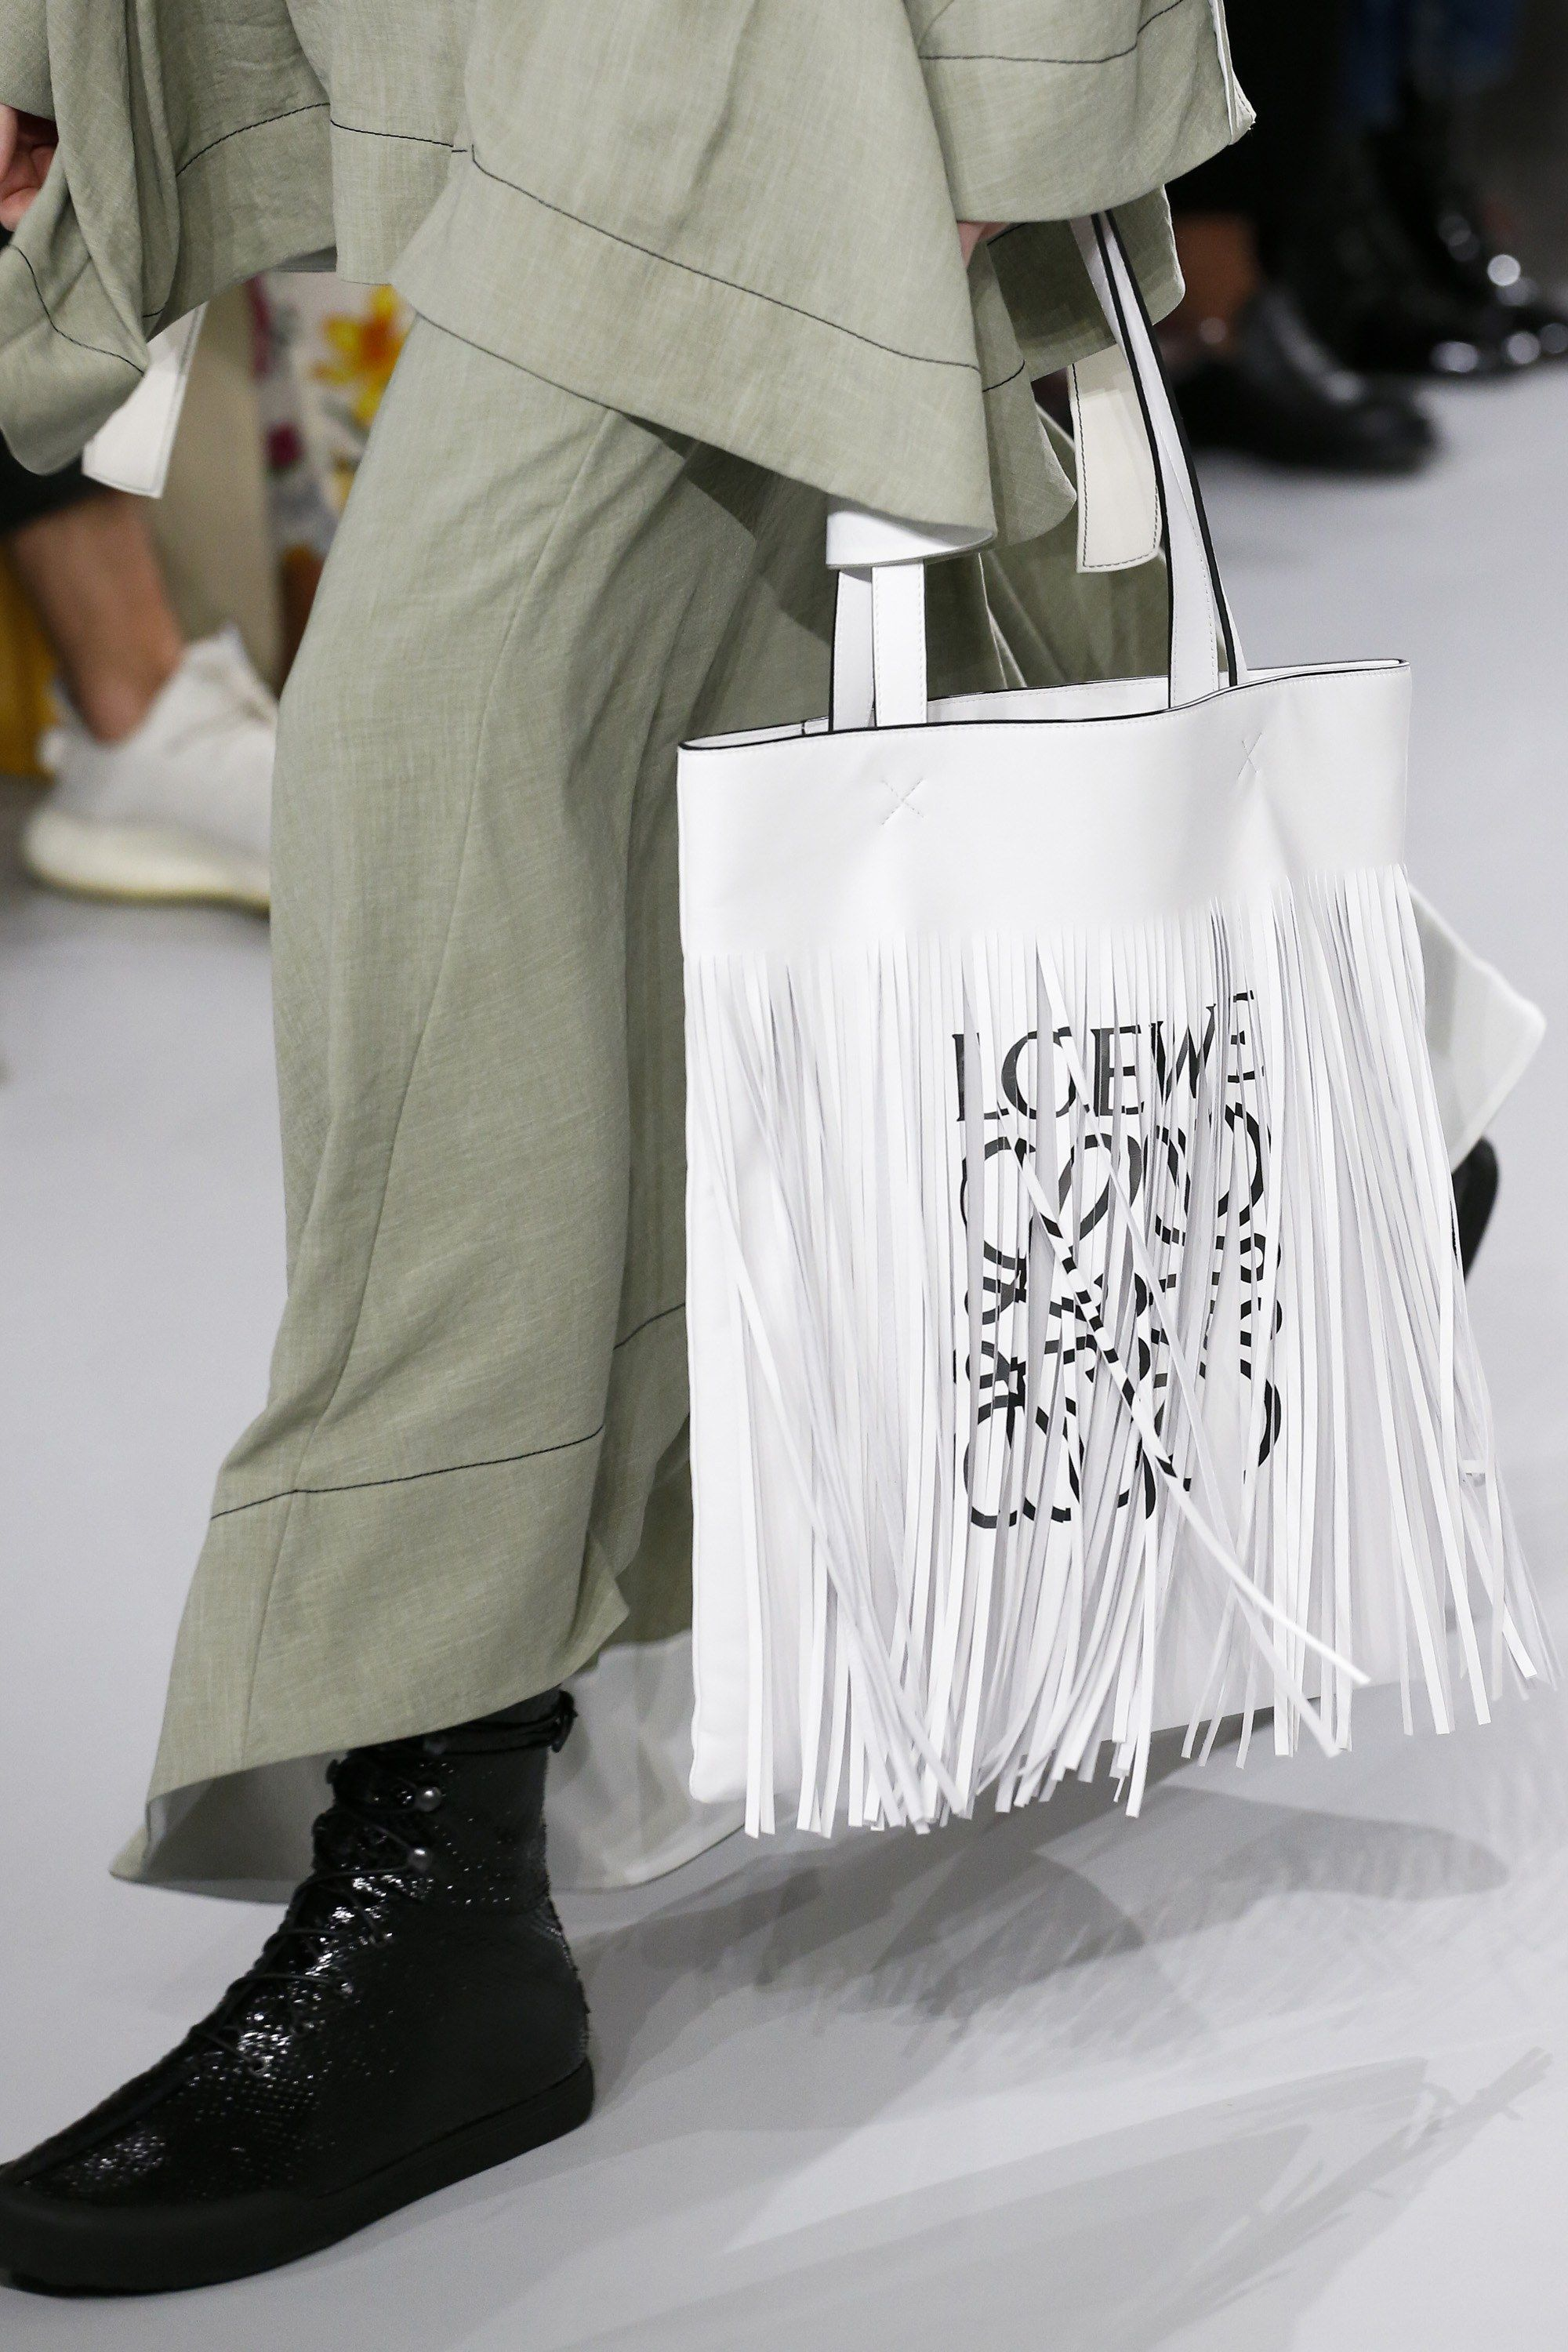 ae225dcbc9c Loewe Spring 2018 Ready-to-Wear Fashion Show | |TOTE-ALLY| | Bags ...